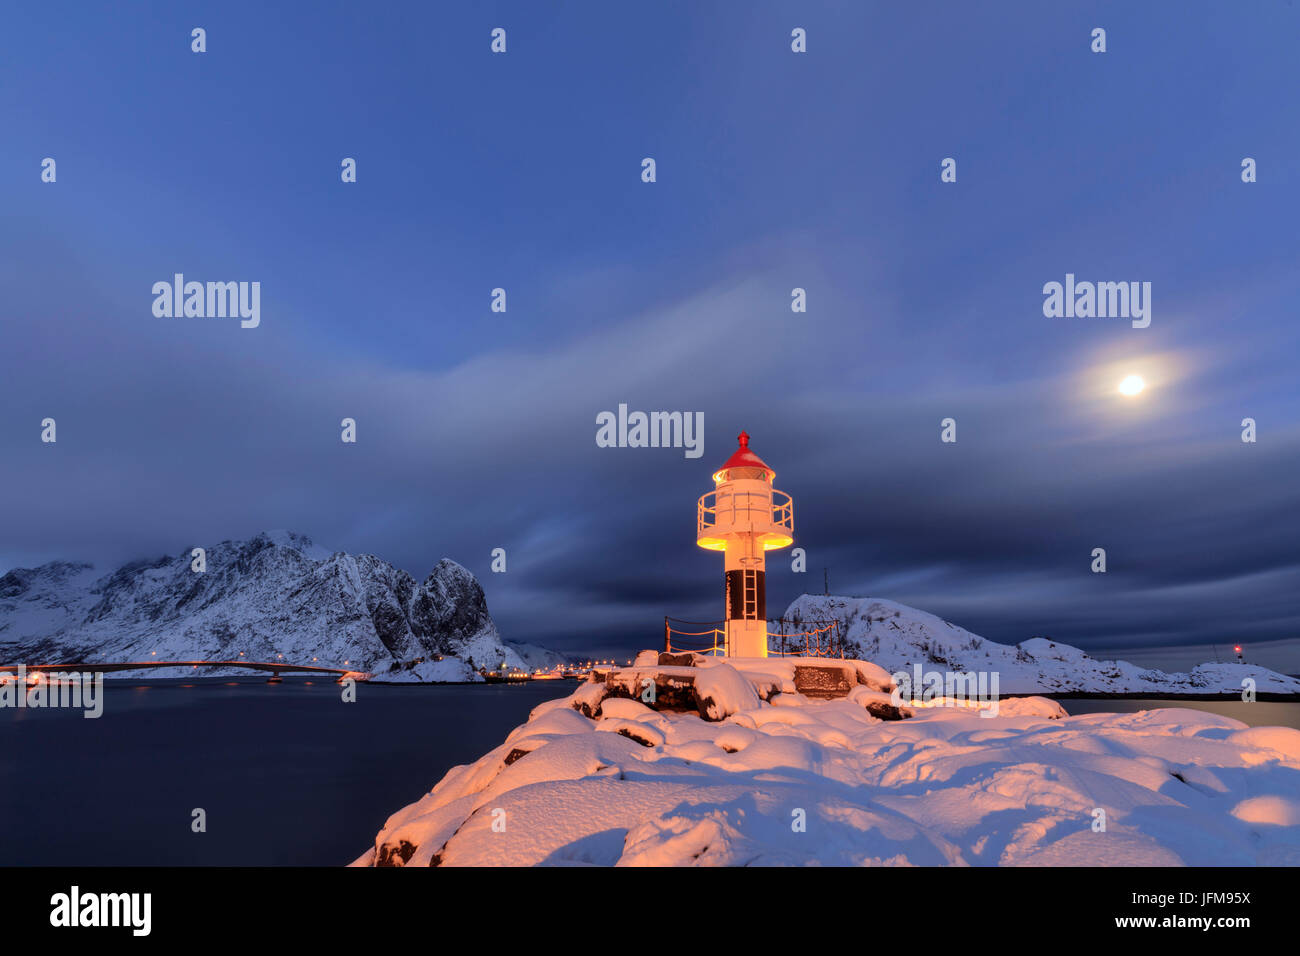 Lighthouse and full moon in the Arctic night with the village of Reine in the background Nordland Lofoten Islands - Stock Image